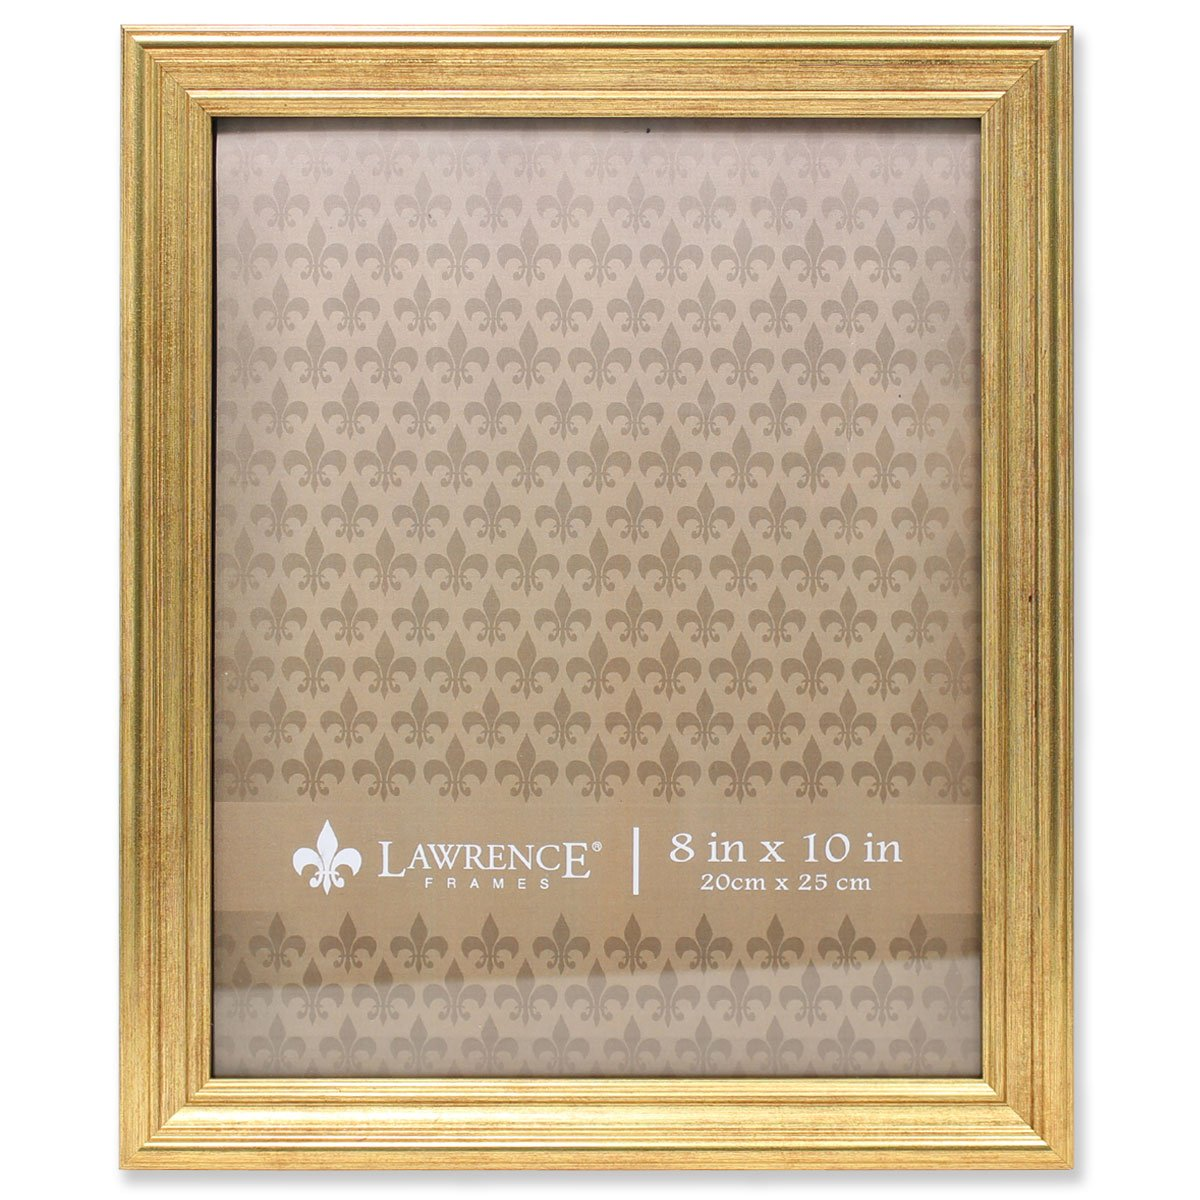 Lawrence Frames Sutter Gold 8x10 Picture Frame, 8 by 10-Inch, by Lawrence Frames (Image #1)